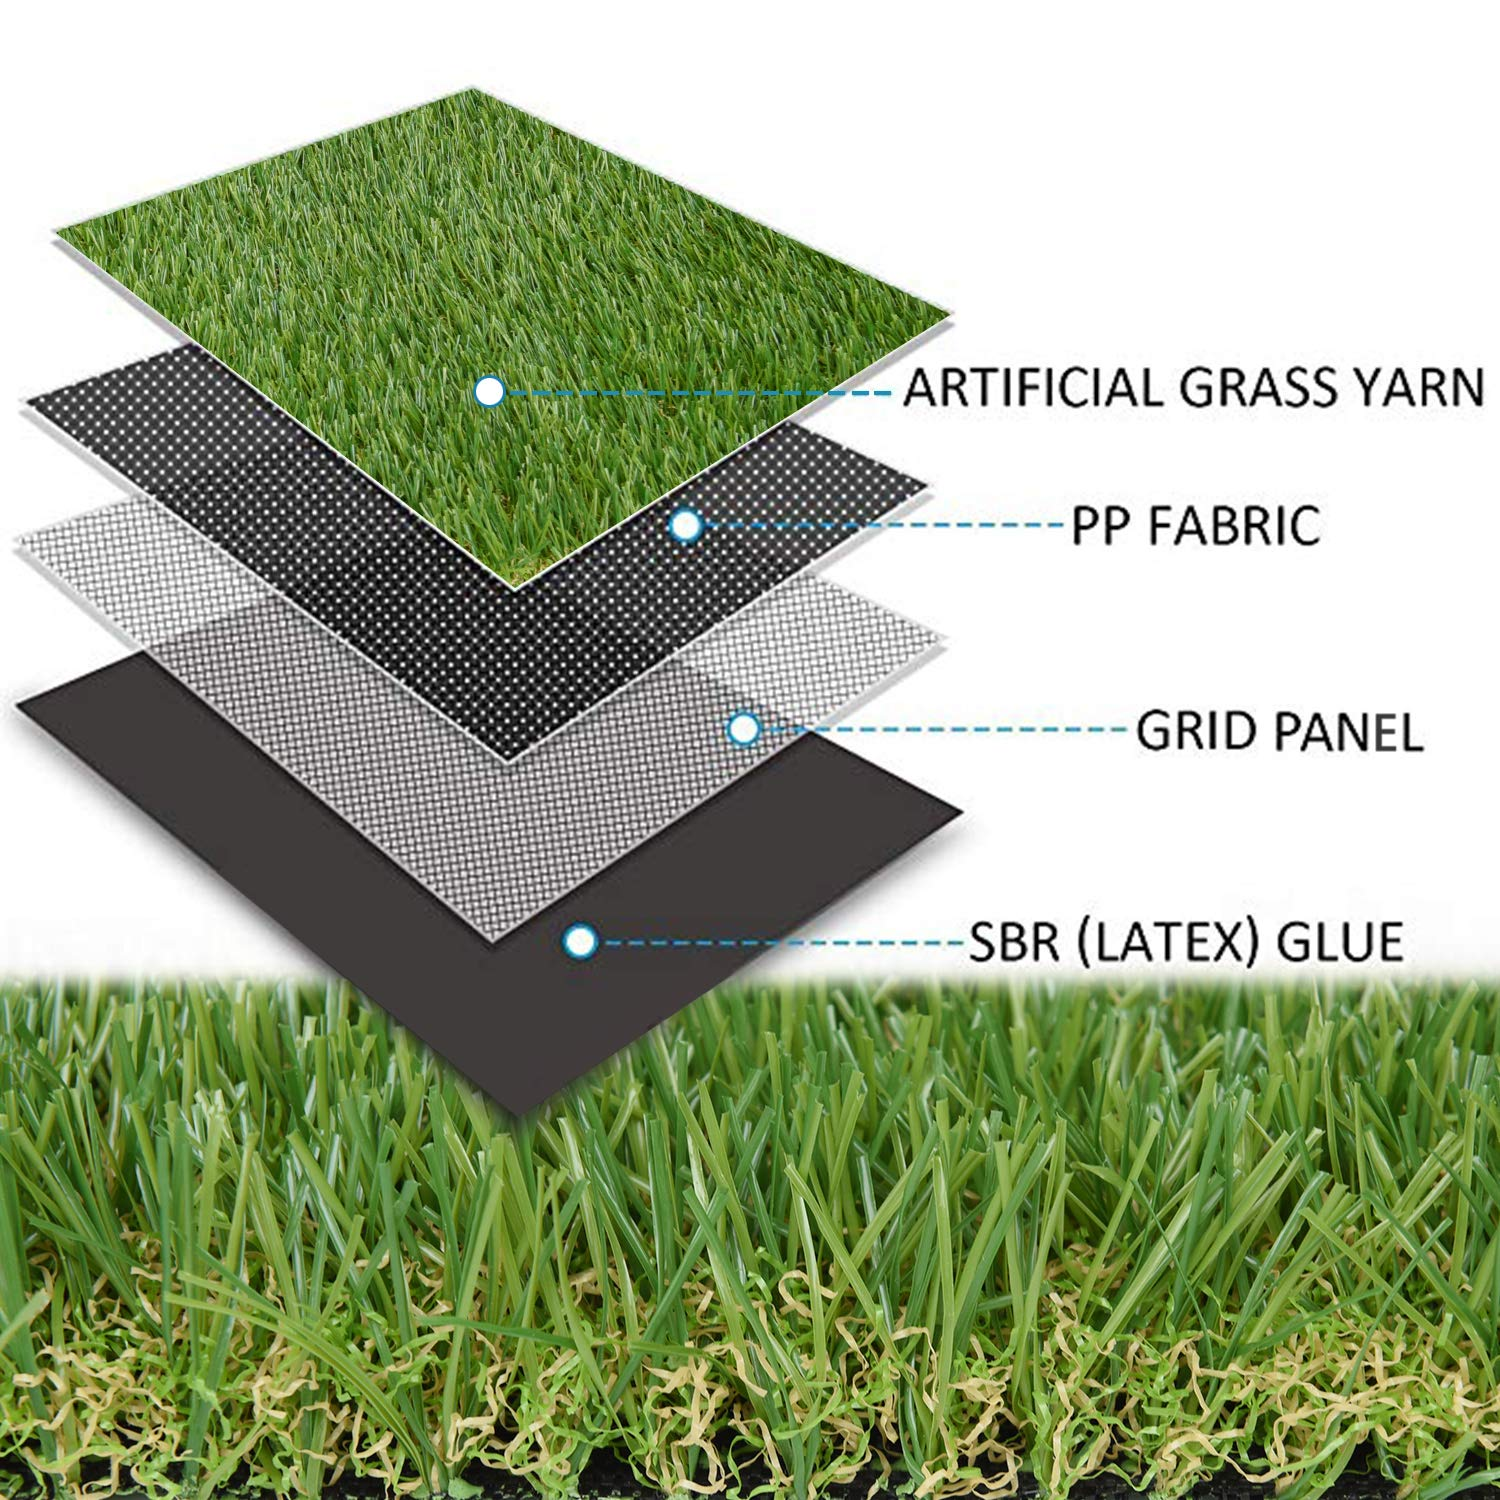 RoundLove Artificial Turf Lawn Fake Grass Indoor Outdoor Landscape Pet Dog Area (40X80 in) by RoundLove (Image #3)